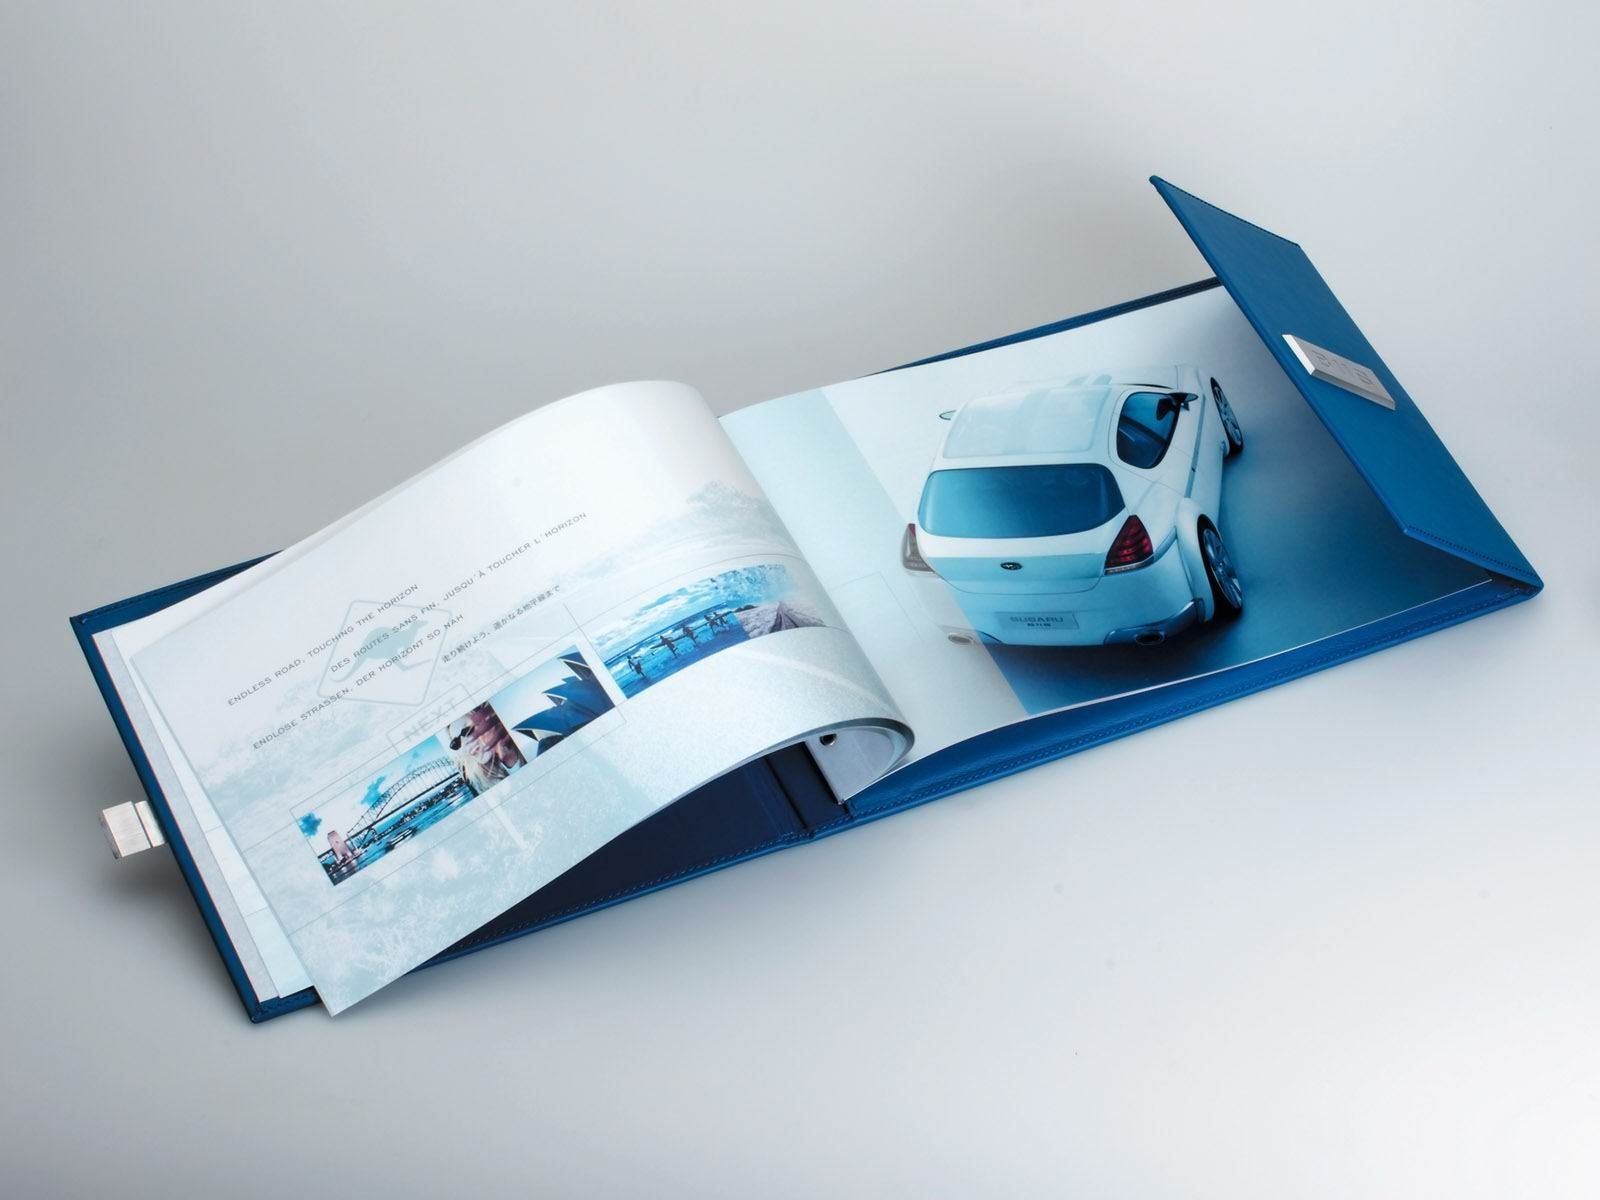 Get Printed Booklet Delivery In One Business Day At Lasvegascolorprinting Com We Avail High Quality Booklet P Brochure Print Booklet Printing Catalog Printing